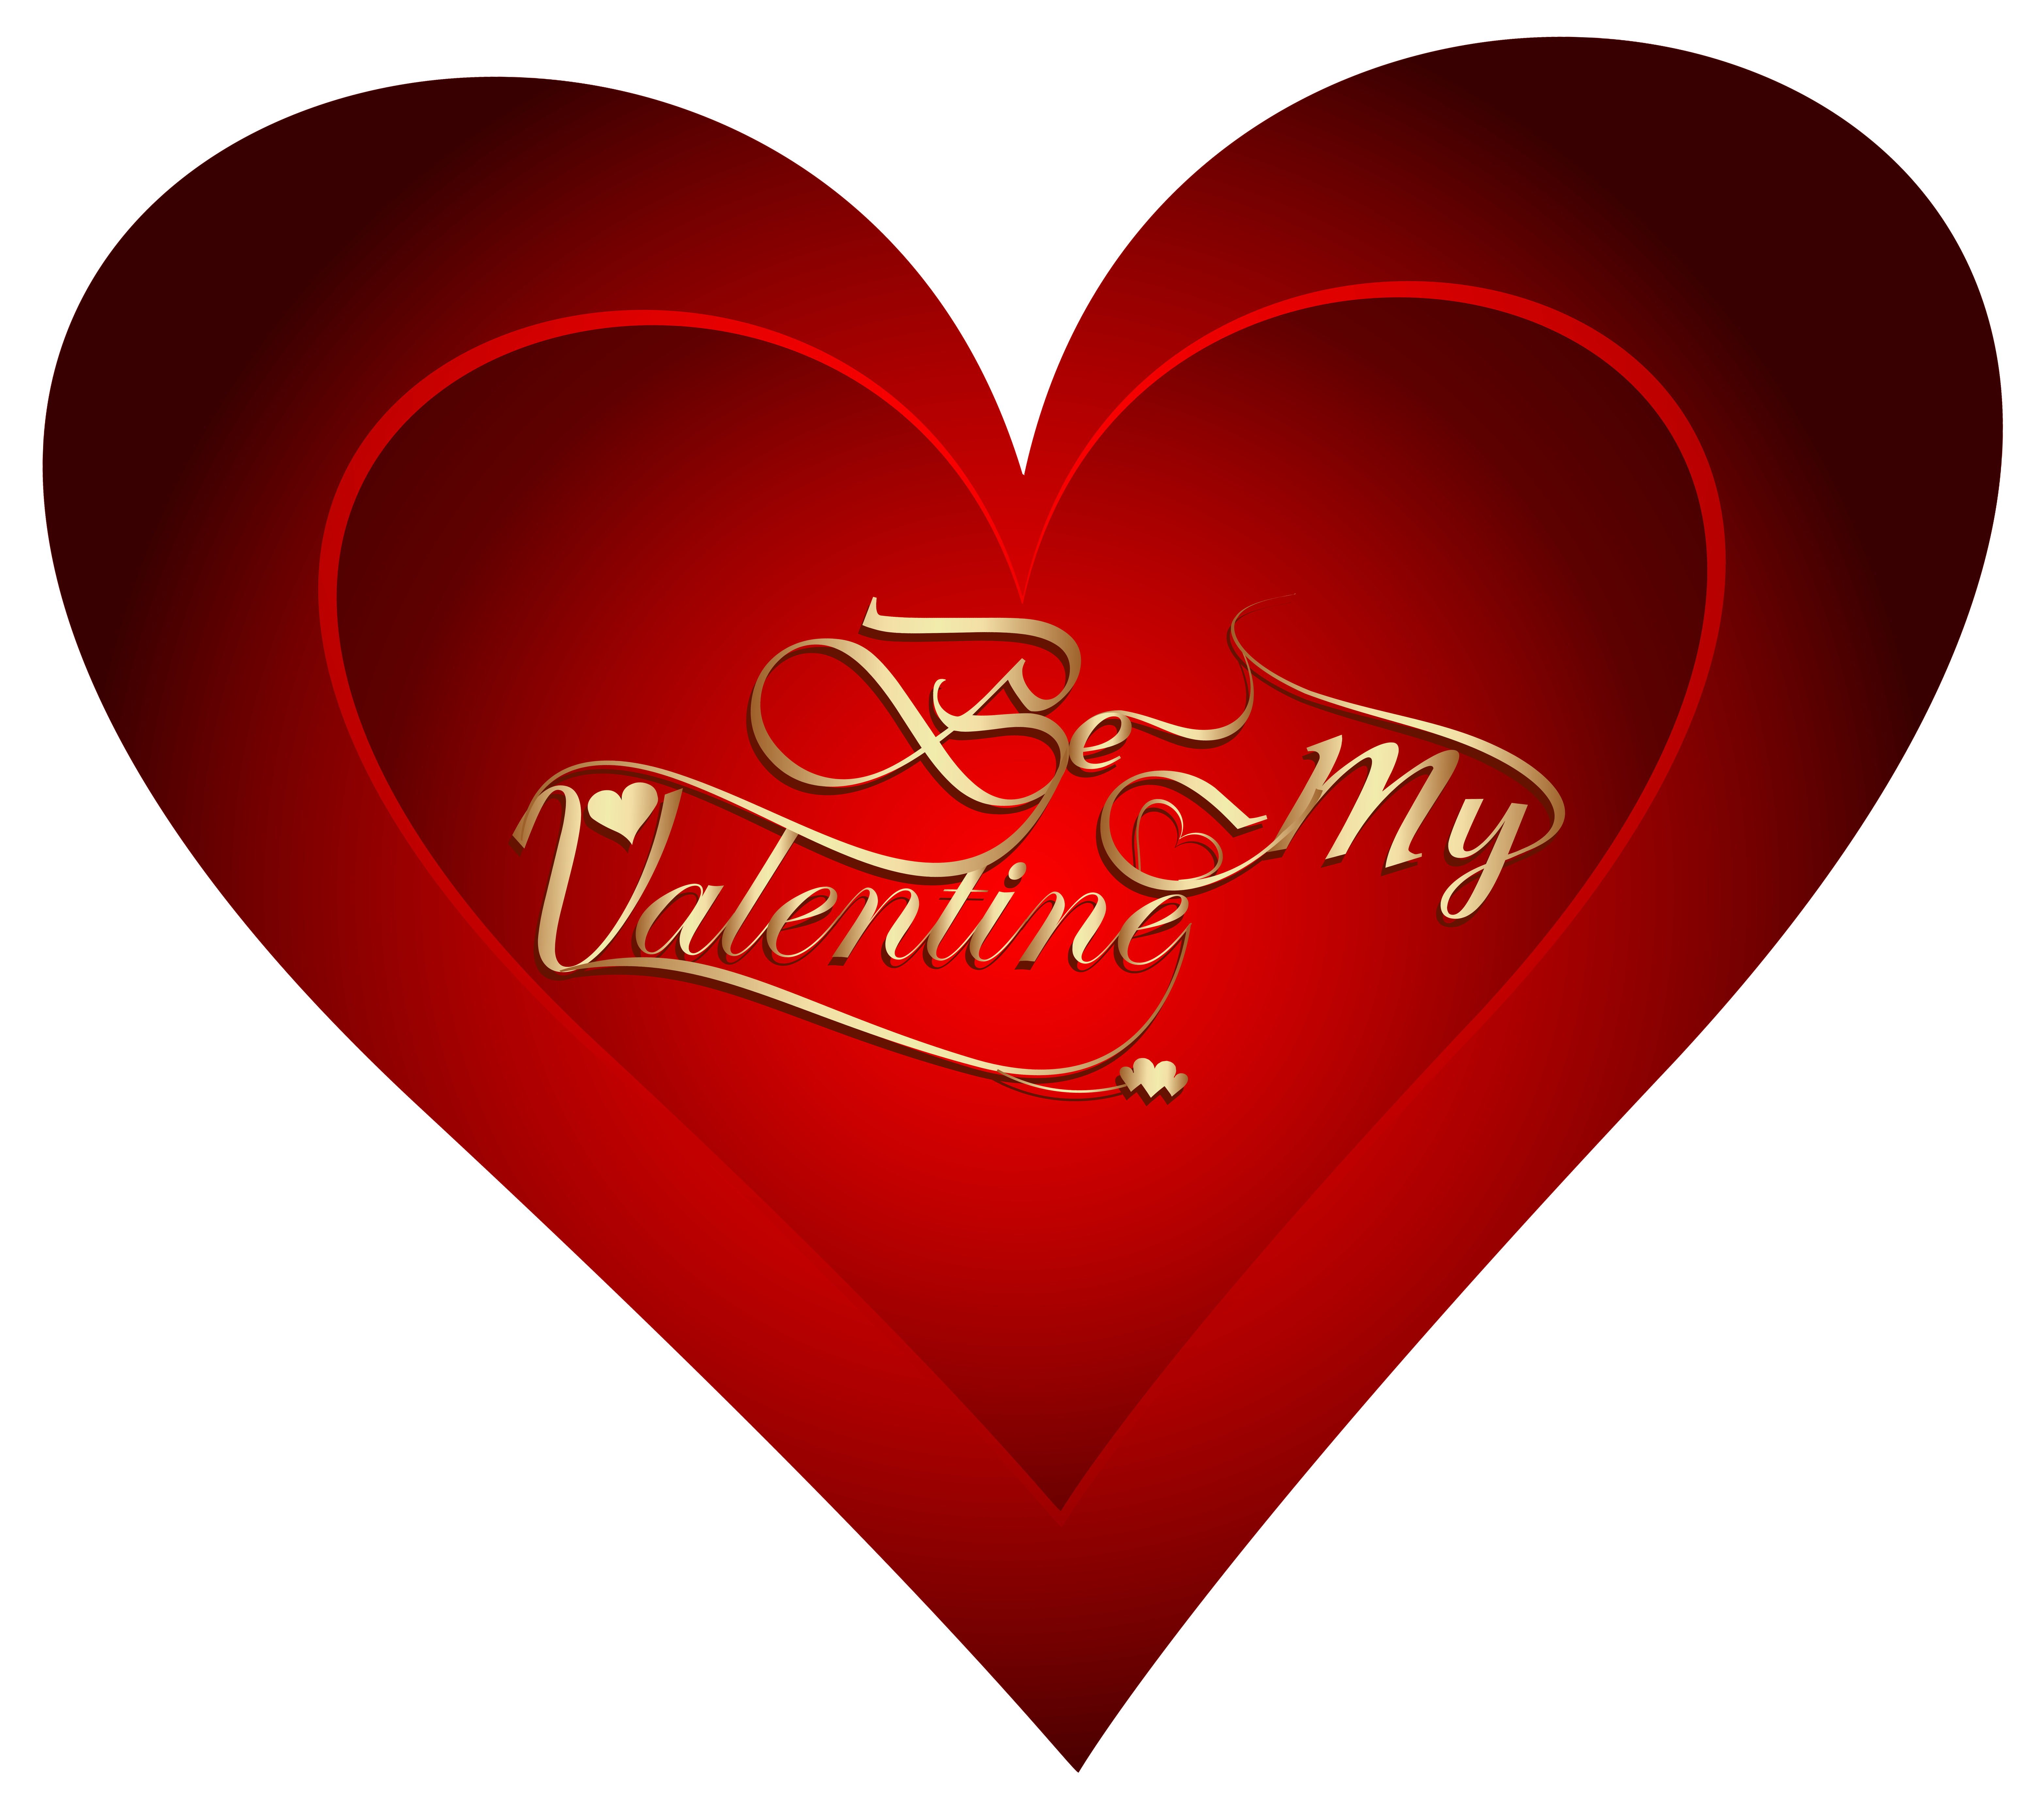 Be My Valentine Heart PNG Clipart Image.